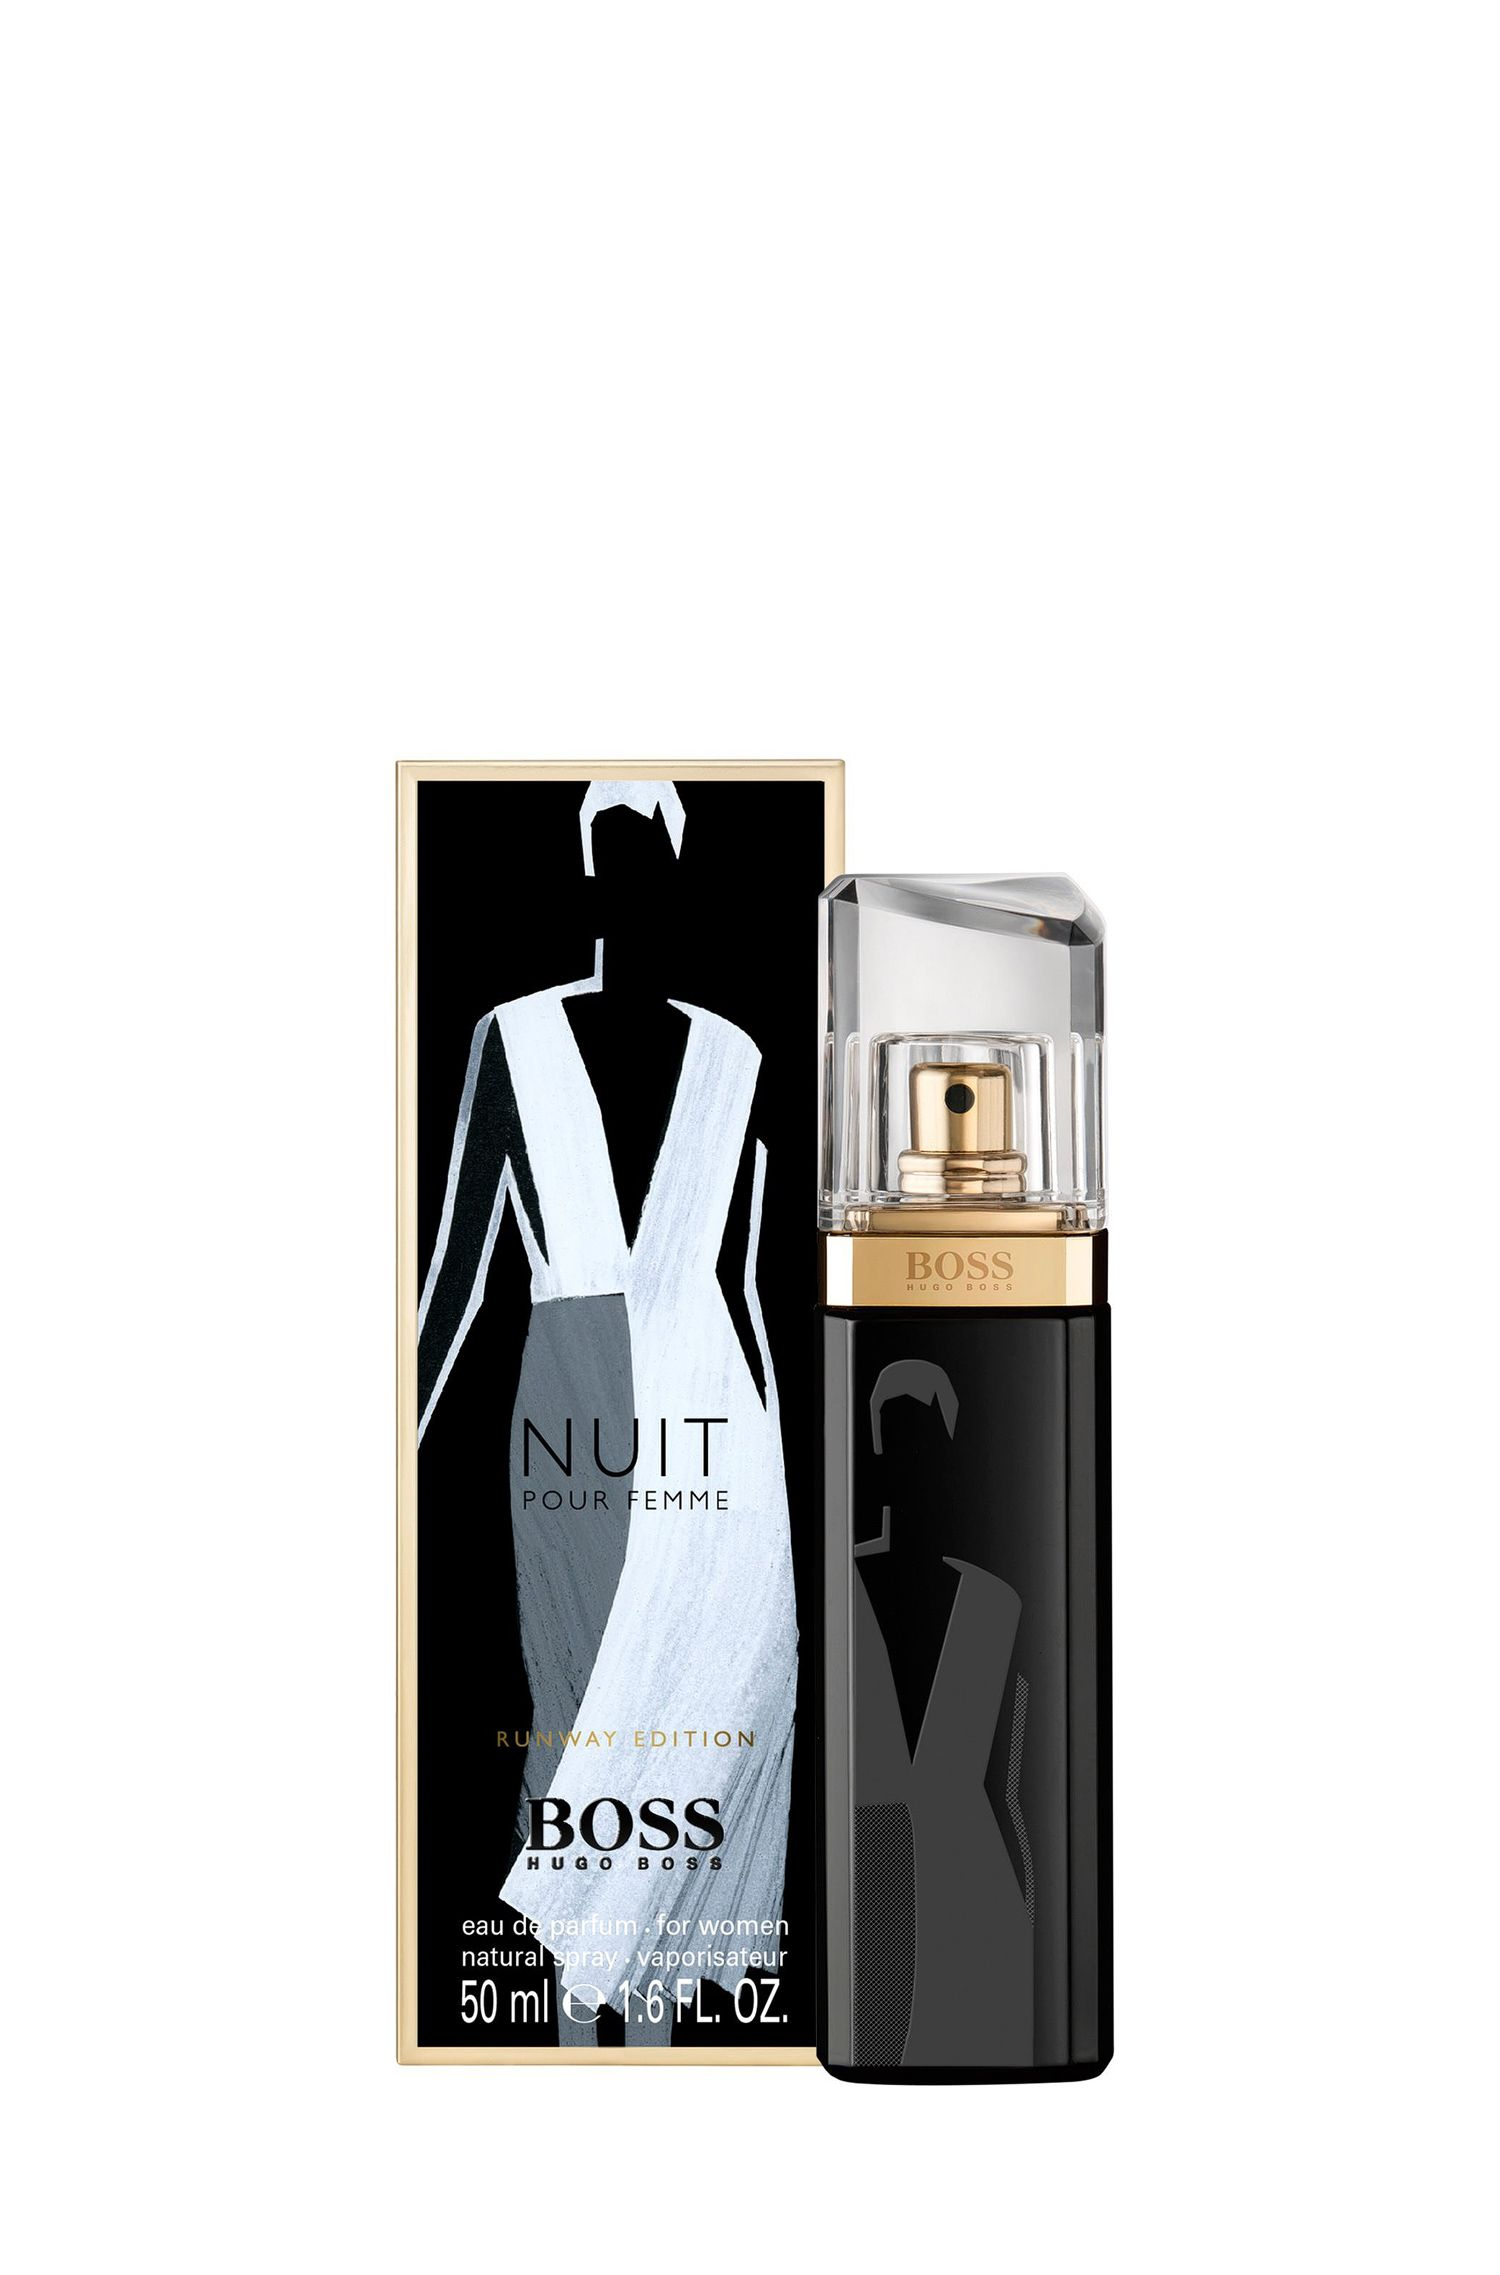 Eau de Parfum 'BOSS Nuit Runway Edition' 50 ml, Assorted-Pre-Pack